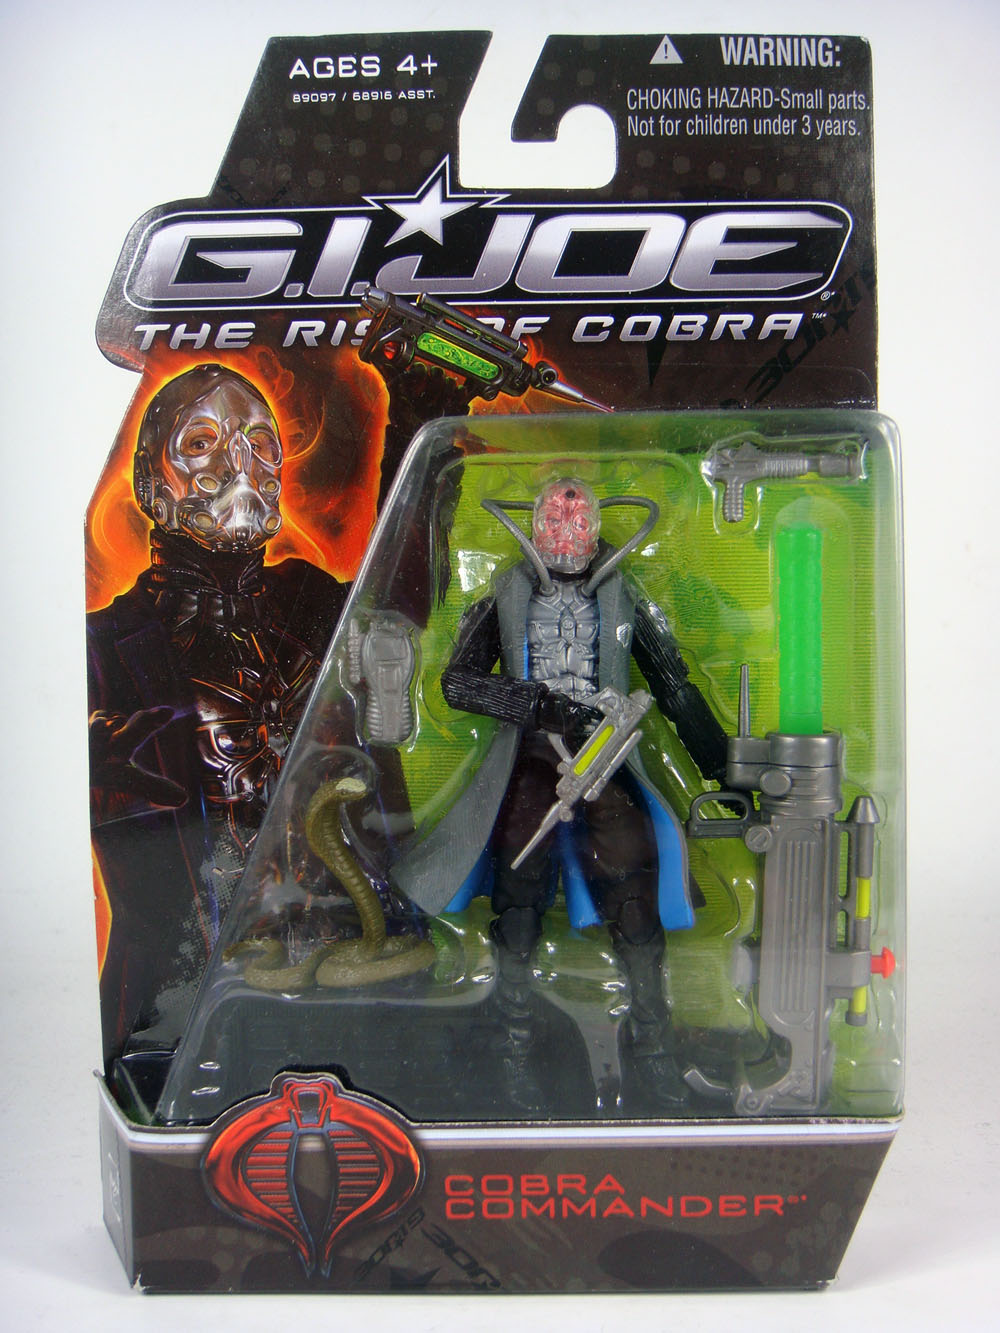 The action figure for Cobra Commander from the upcoming G.I. Joe film.  Also known as a Stephen Sommers abortion.